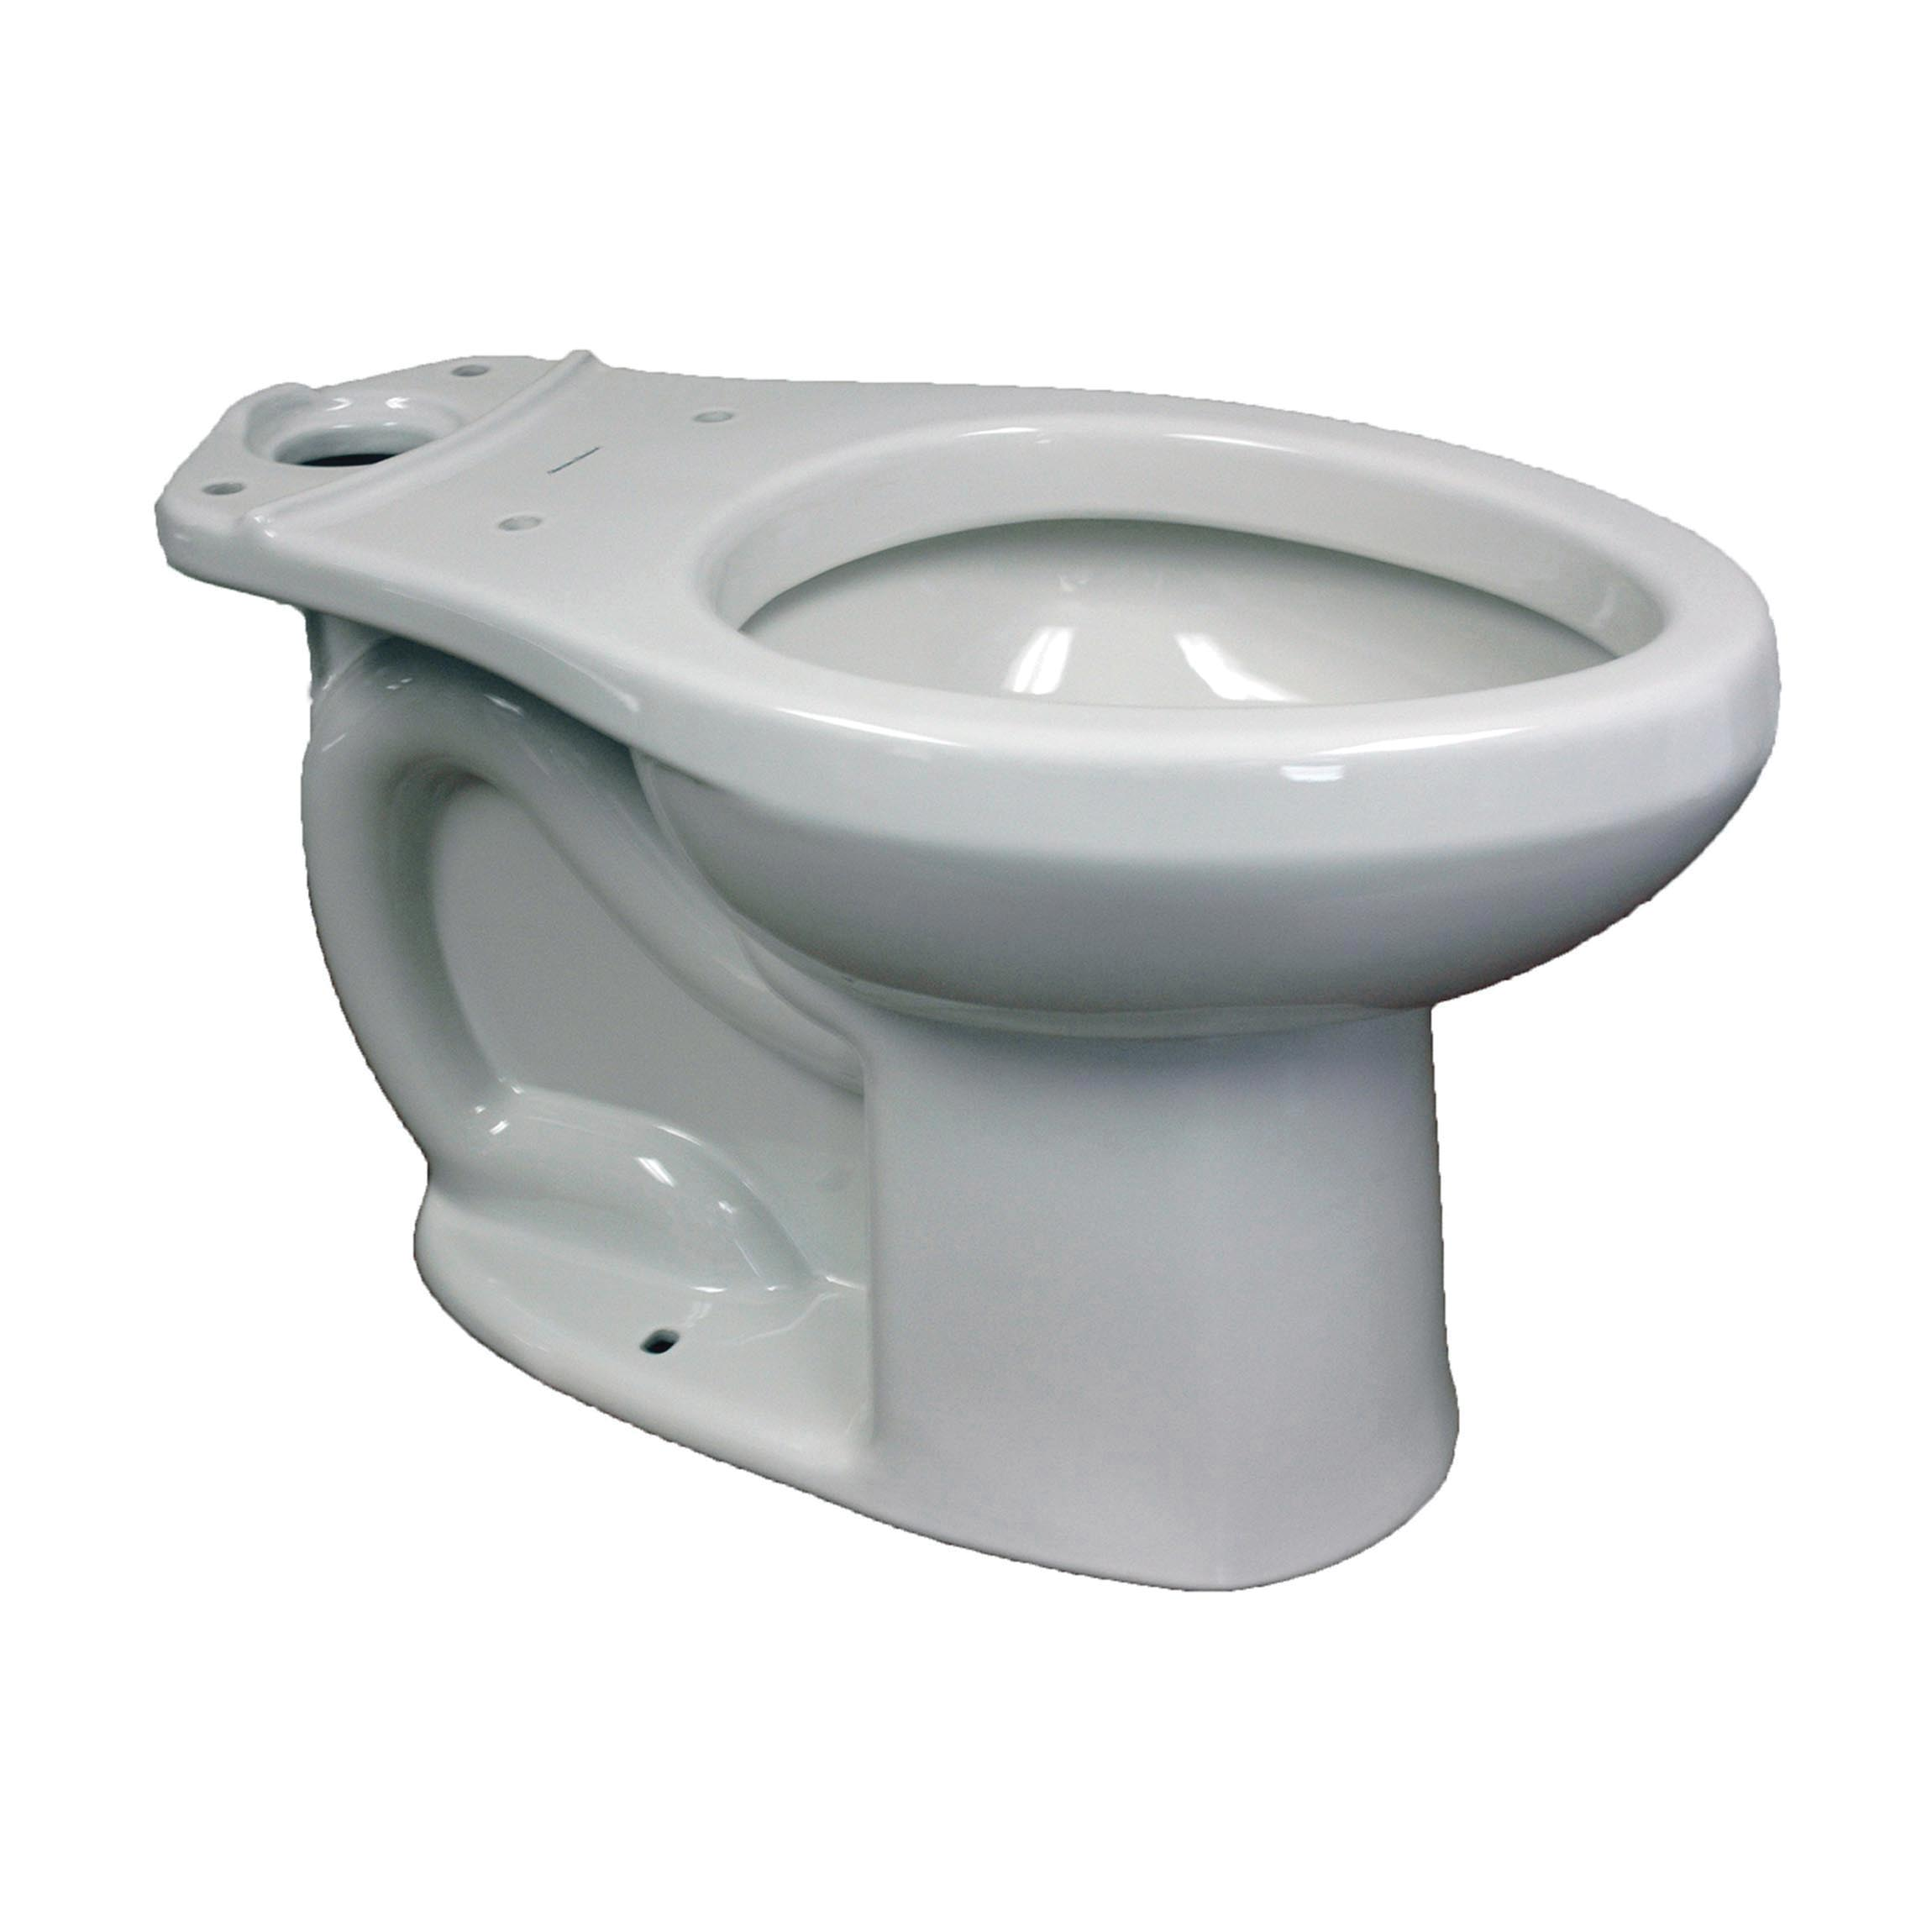 American Standard 3705216.020 H2Optimum™ Siphonic Right Height™ Toilet Bowl Only, Elongated, 8 x 9 in Water Surface, 16-1/2 in H Rim, 2 in Trapway, Import